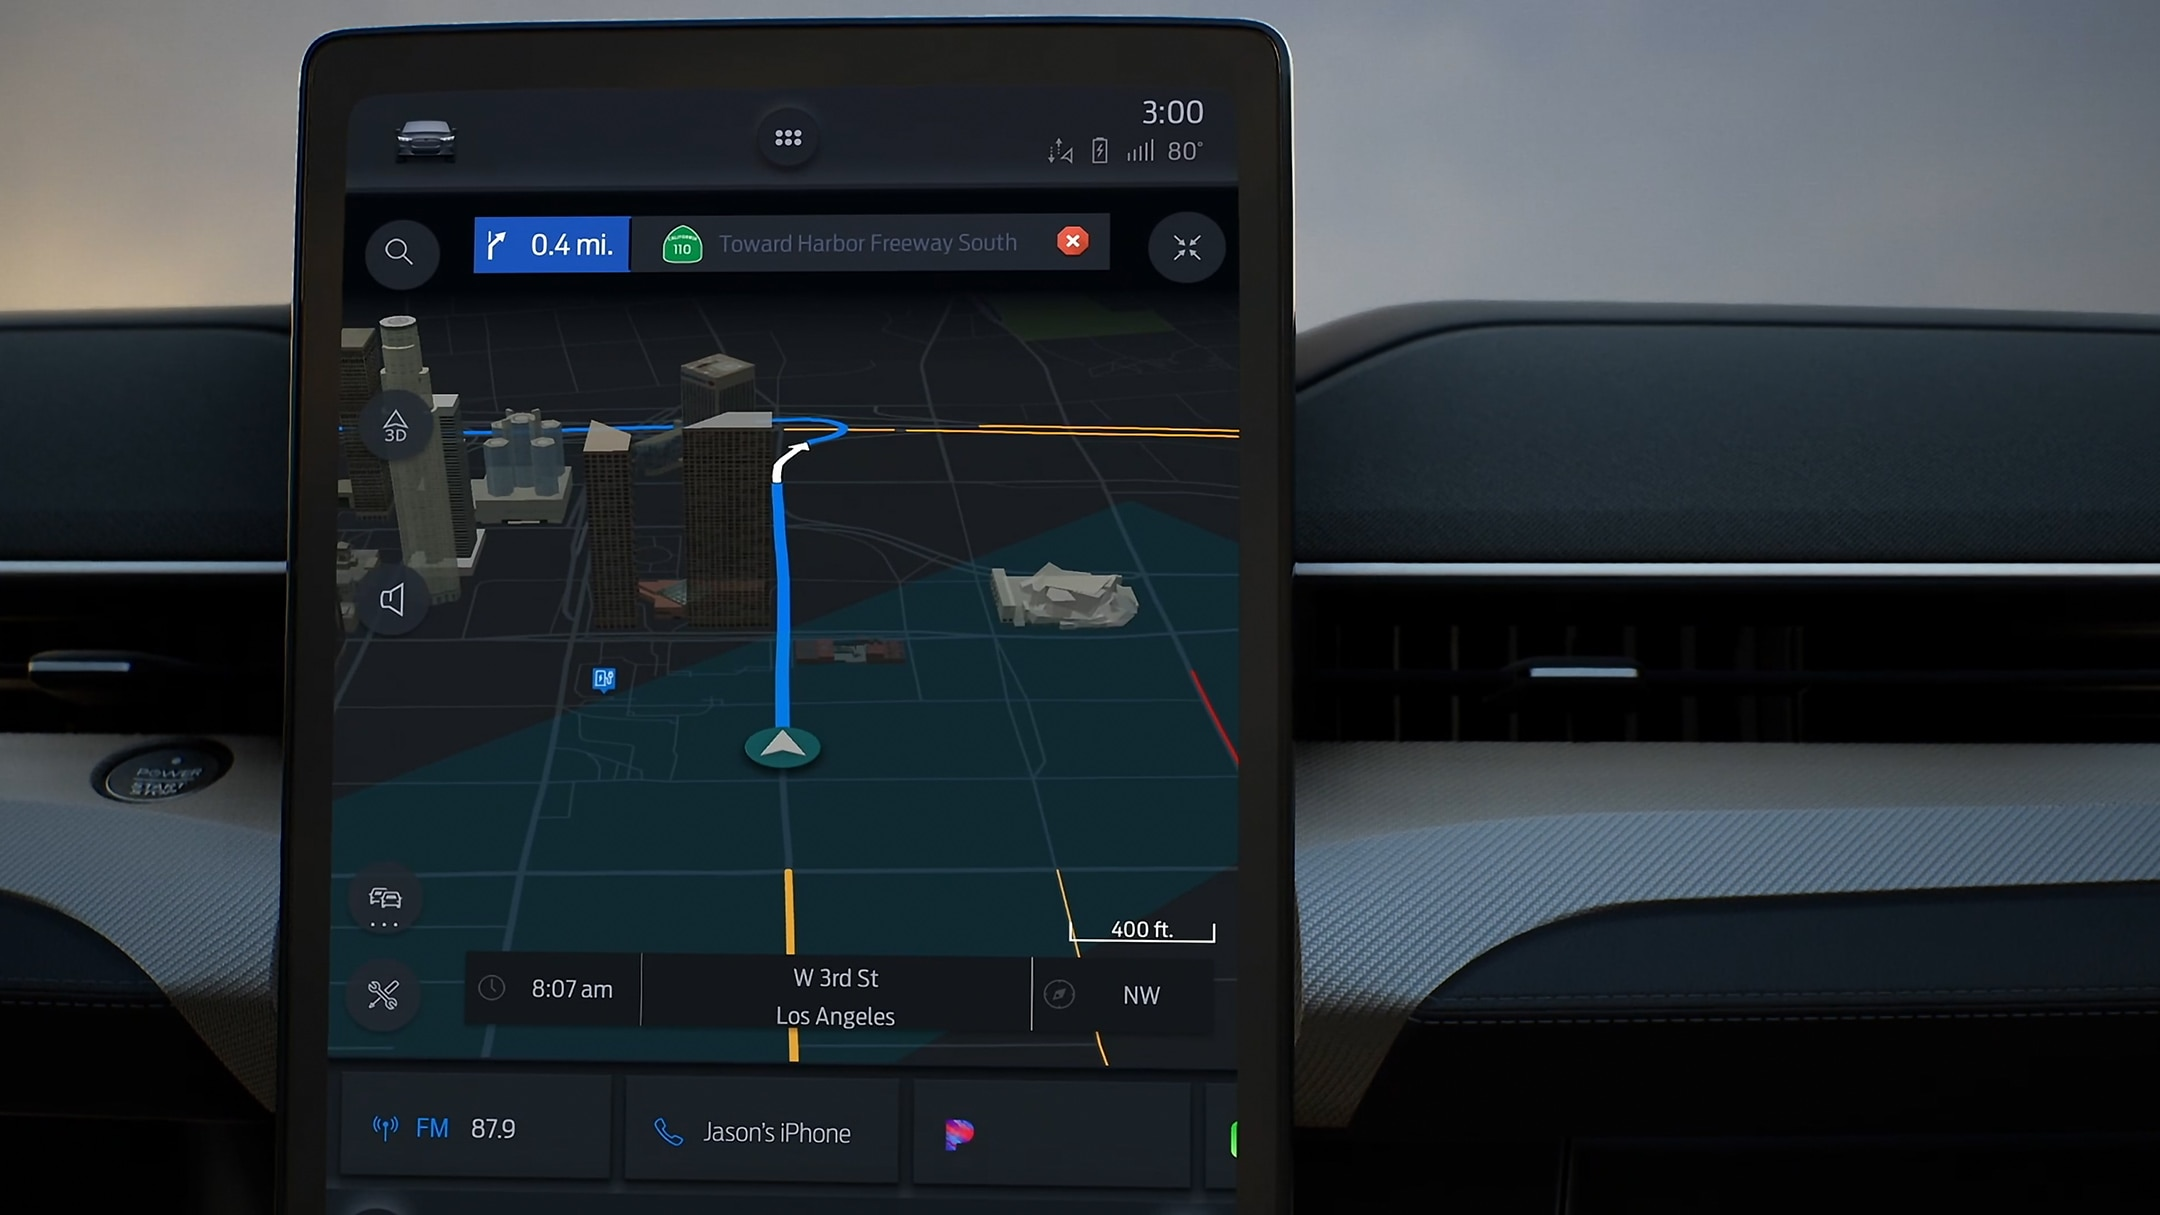 SYNC4 navigation on screen